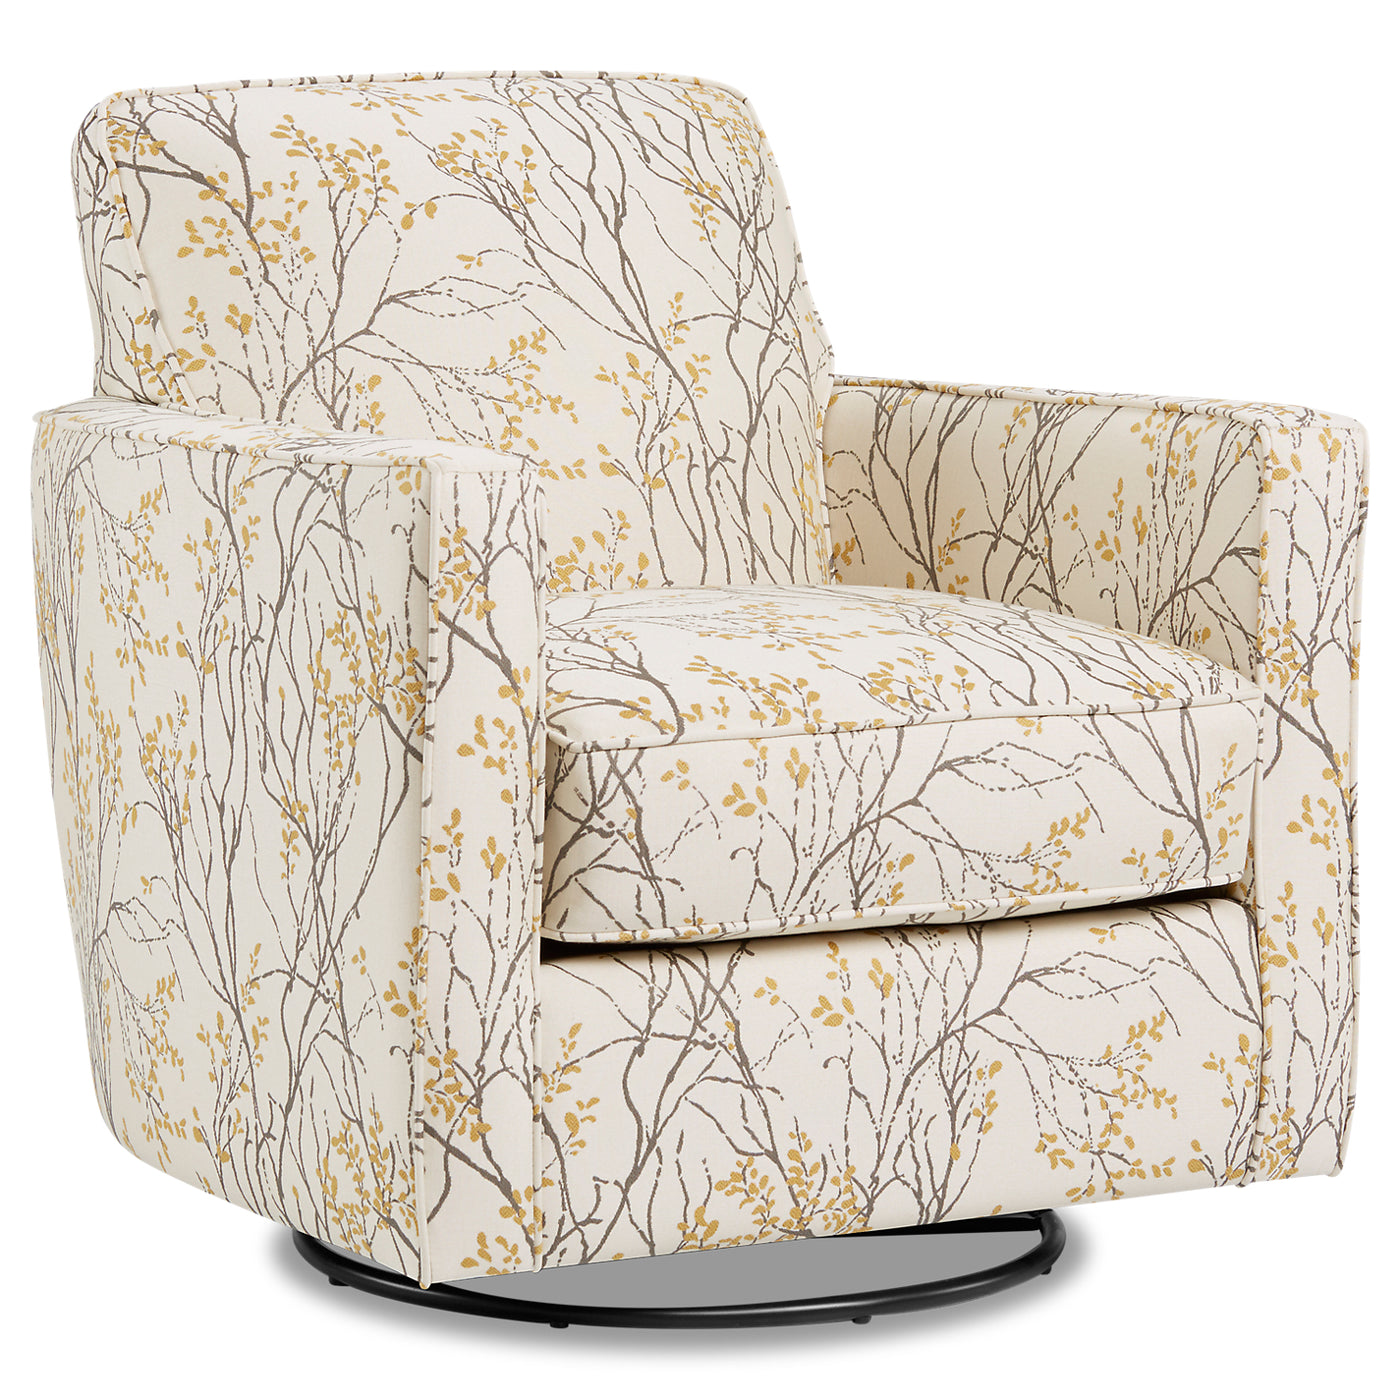 Dimensions Myla Marigold Accent Chair: Thea Fabric Swivel Accent Chair - Myla Marigold